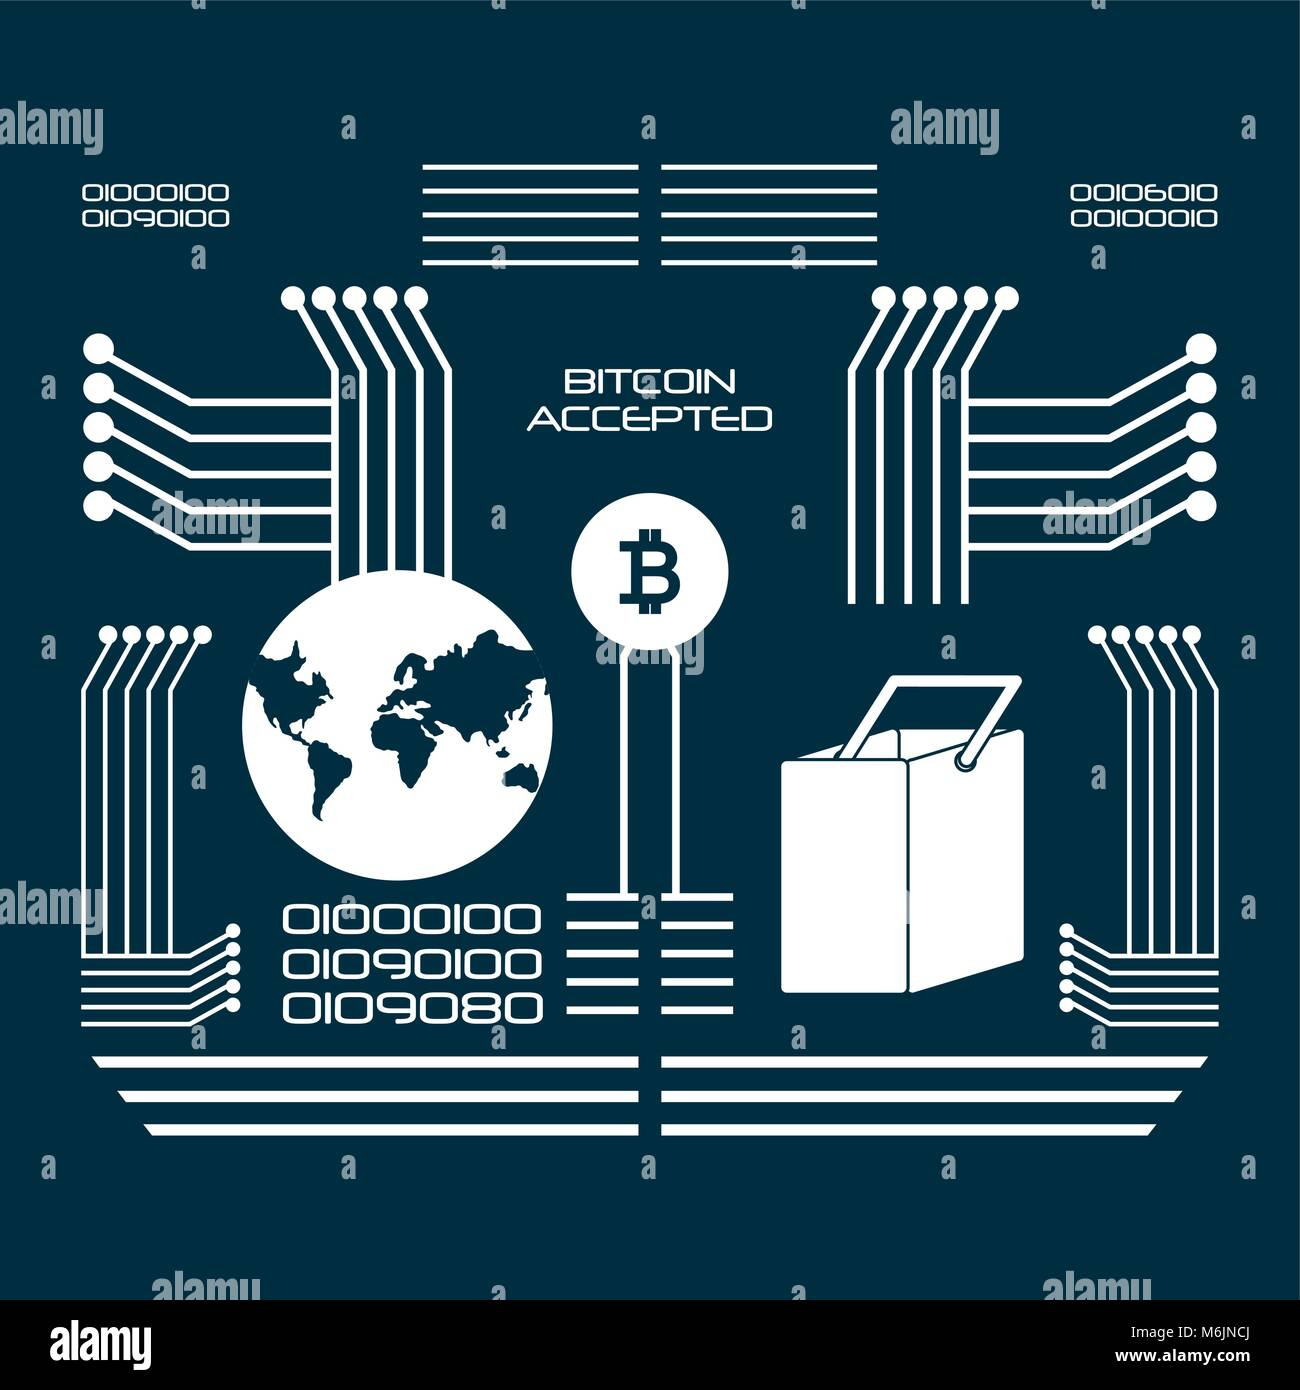 Bitcoin accepted design with binary codes and electronic circuits, vector illustration - Stock Image